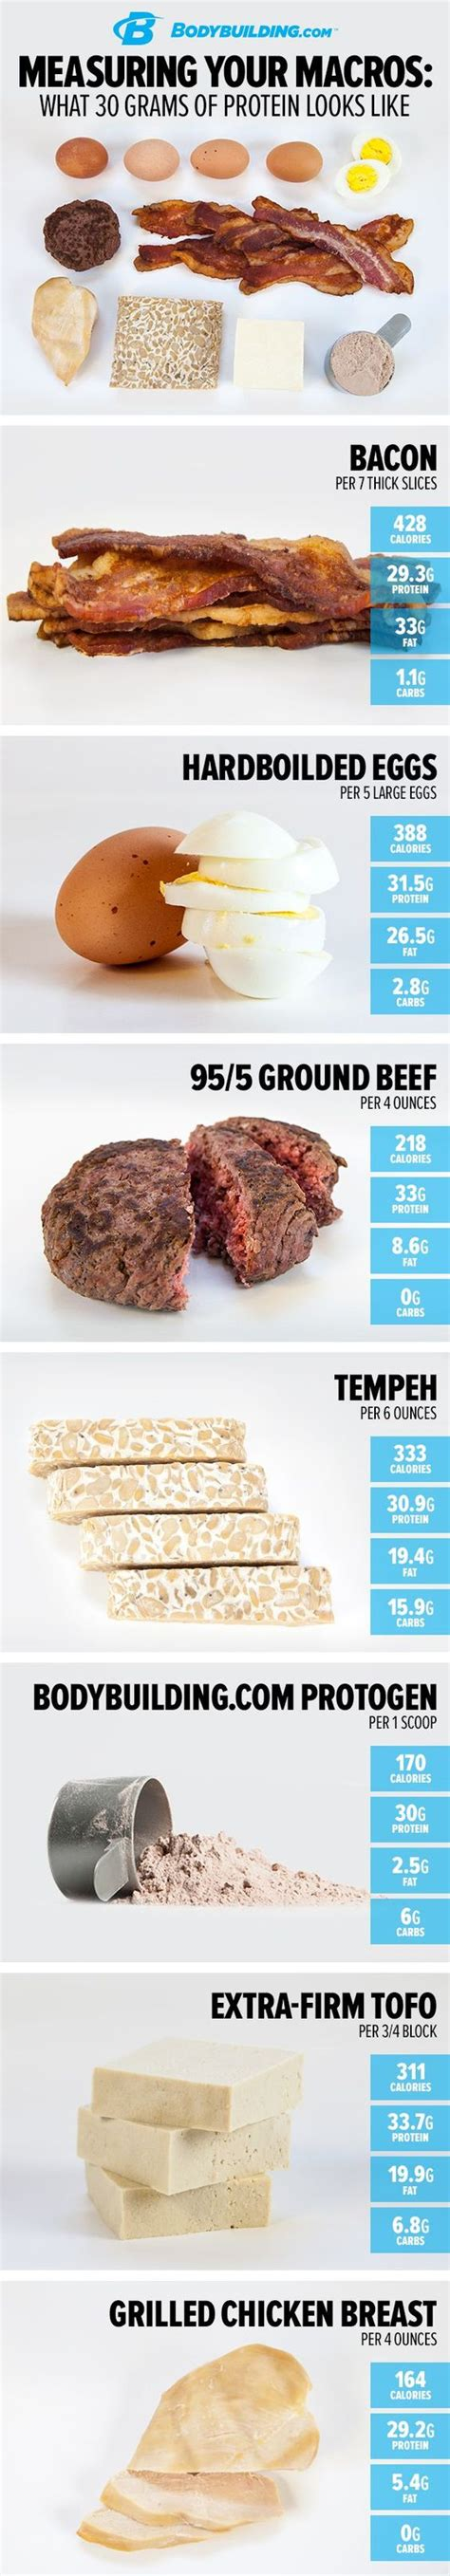 protein 30 grams what exactly 30 grams of protein looks like